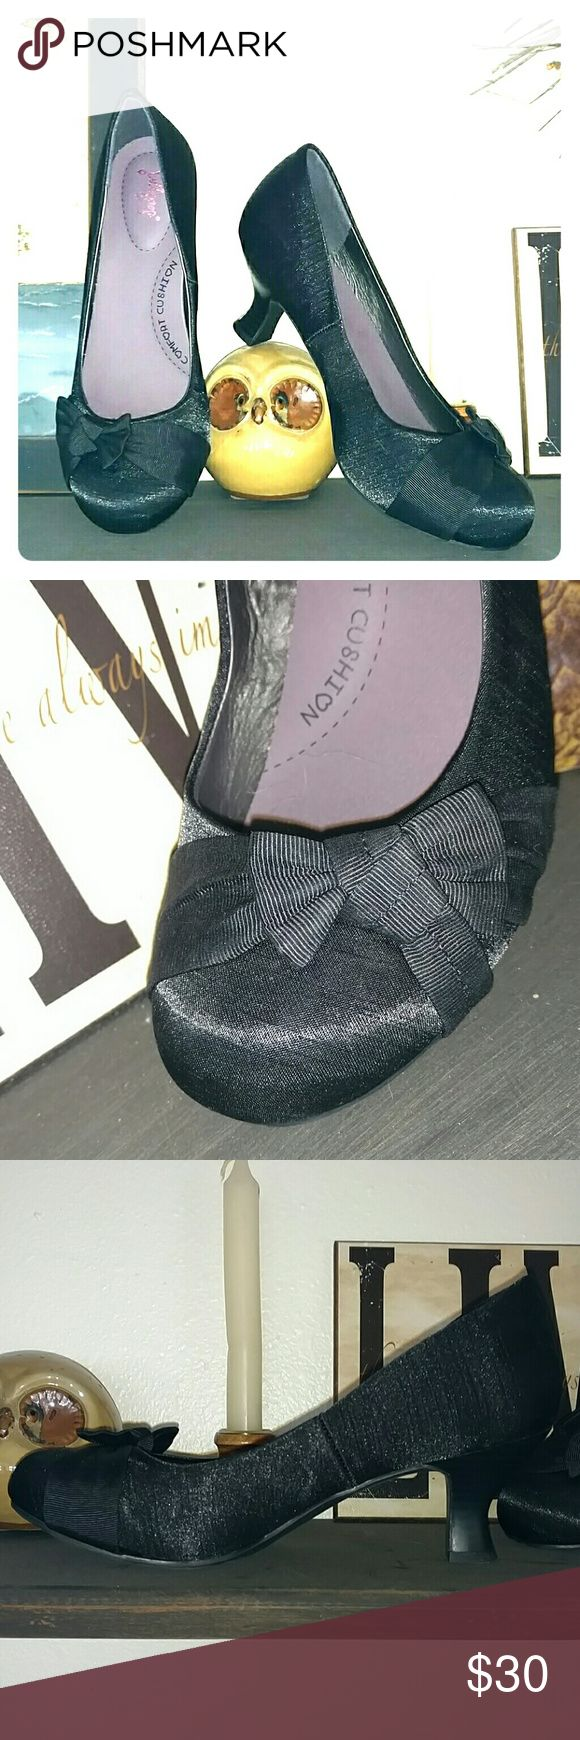 JellyPop  Satin  &. Bow Heels These Adorable Shoes feature satin like exterior Cute Bow on Front Square heels approximately 1.5 inches Worn once to an event  Have inside Cushions Excellent Condition  Offers Welcome !! jellypop Shoes Heels